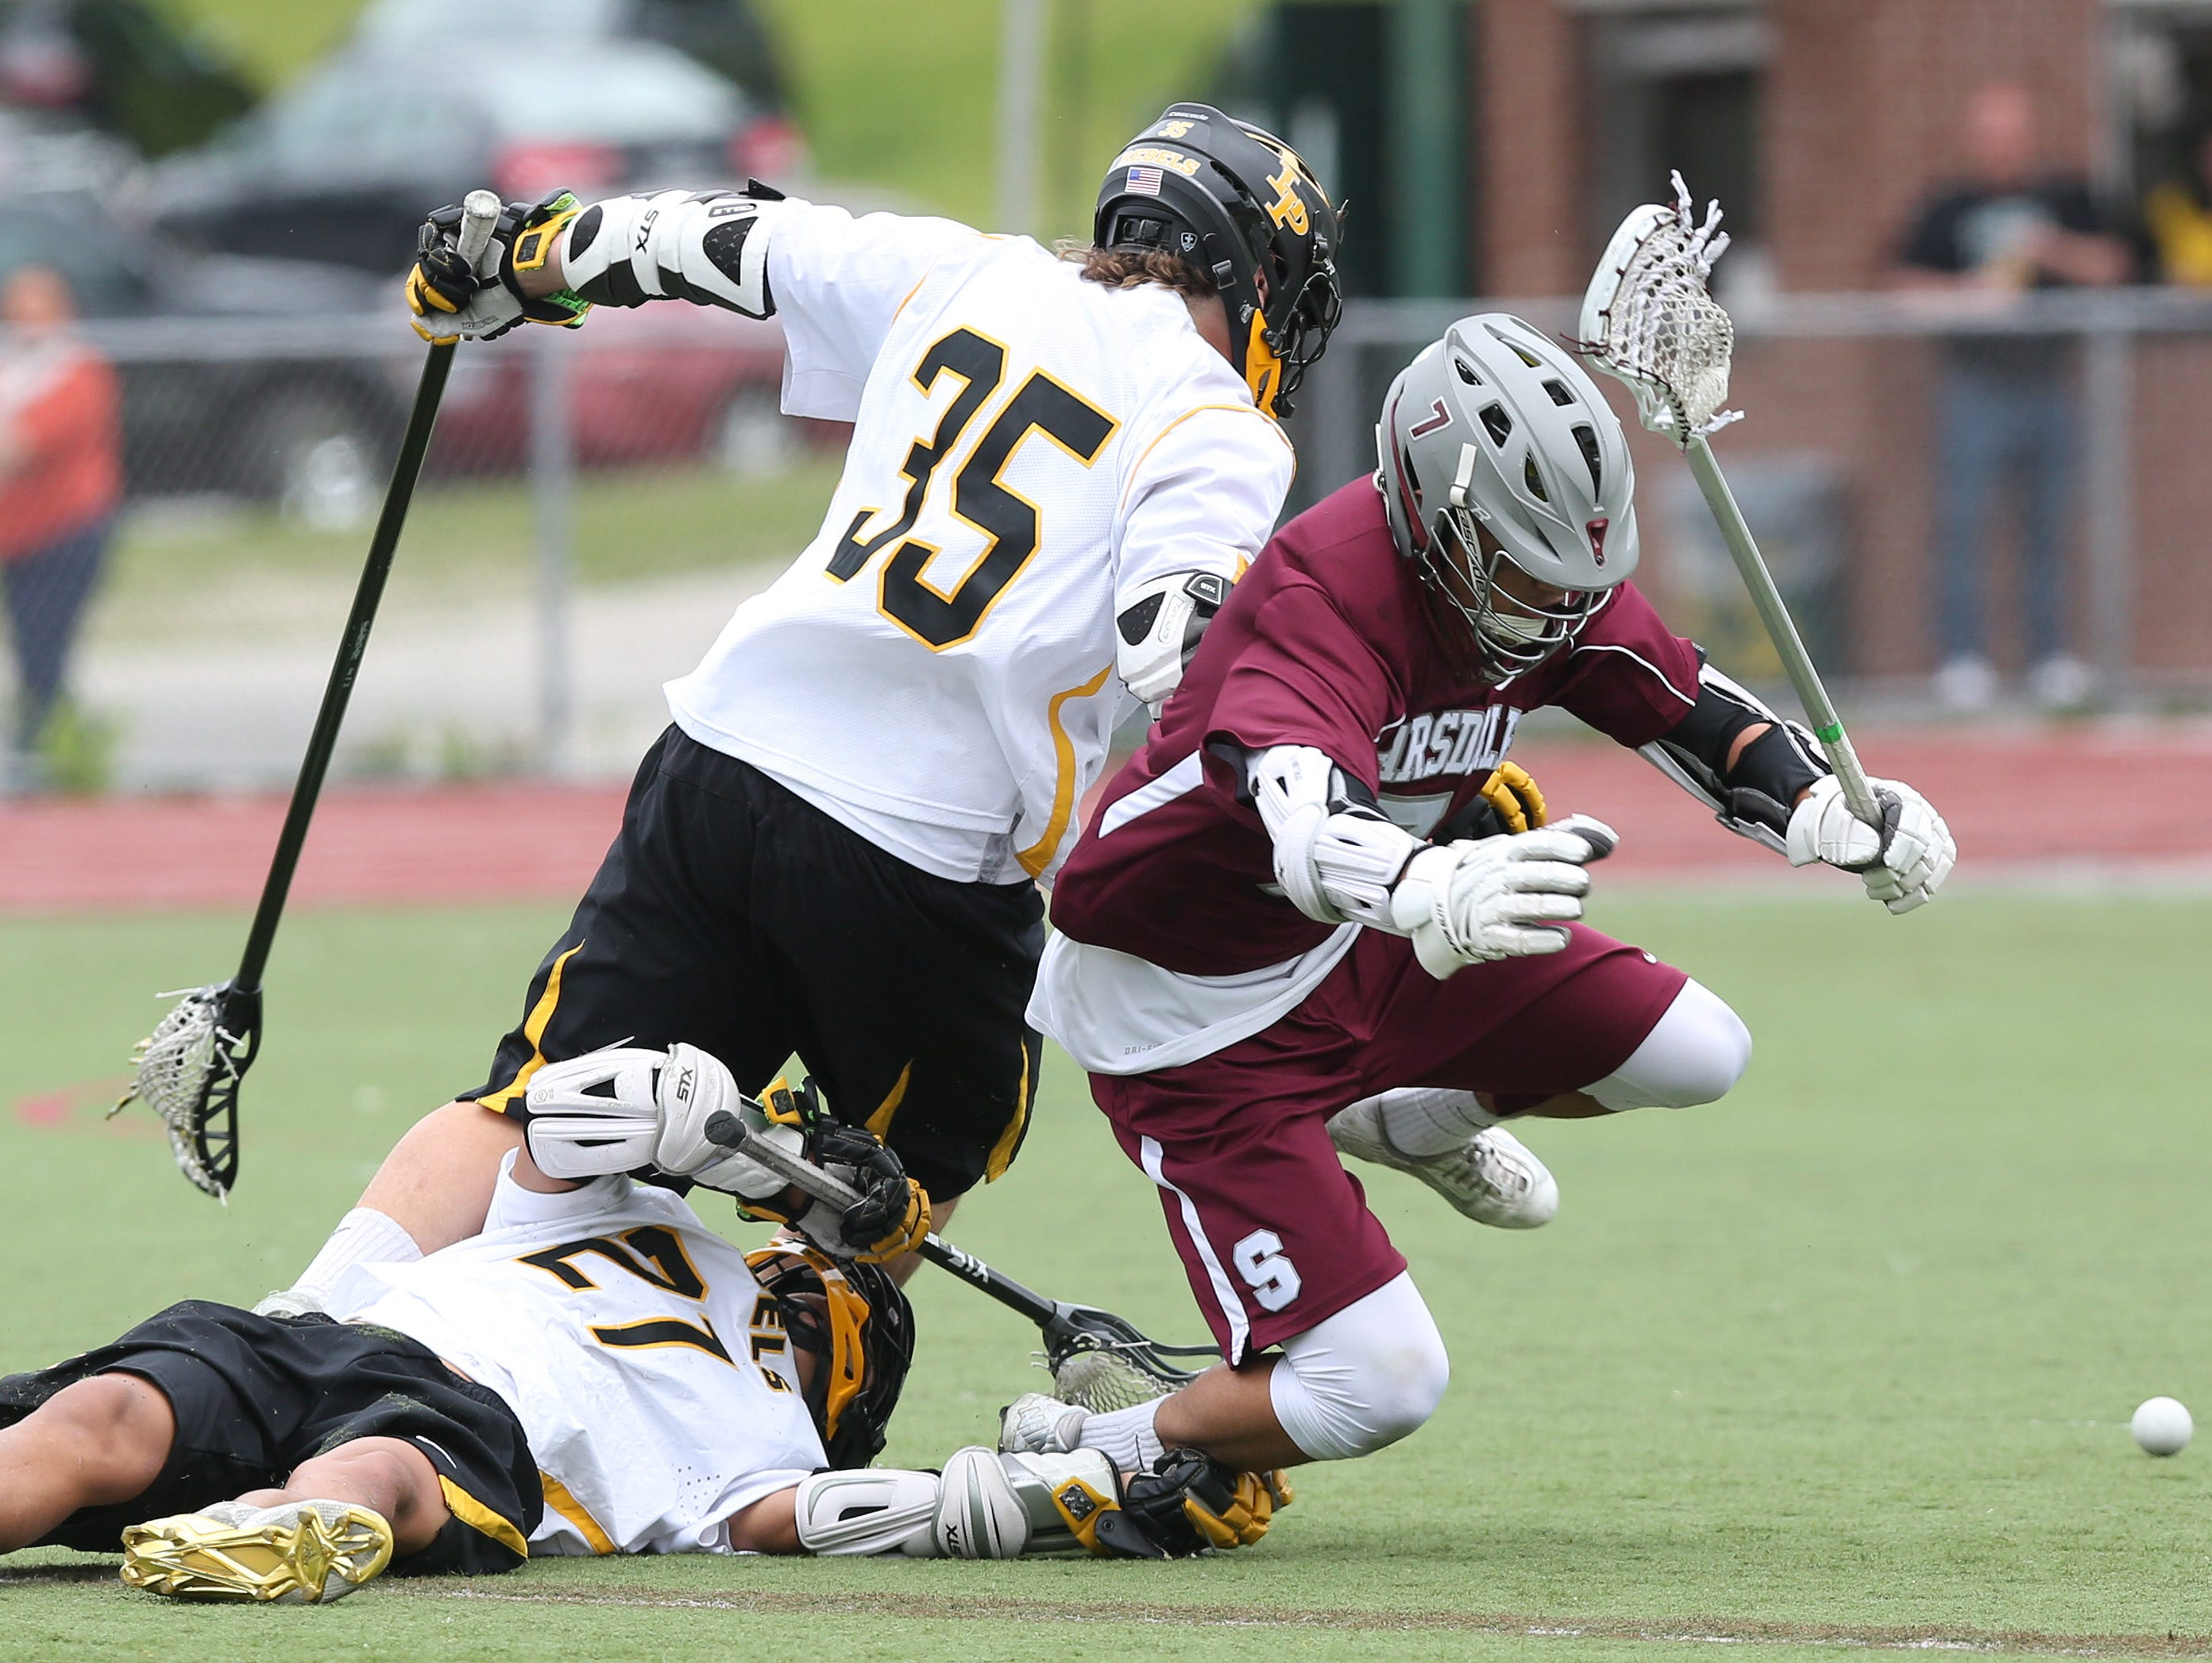 From left, Lakeland/Panas' Tom Ferrari (35) and Eric Otero (21) combine to knock the ball away from Scarsdale's Cooper Schneider (7) during a Section 1 boys lacrosse playoff game at Lakeland High School in Shrub Oak May 21, 2016.